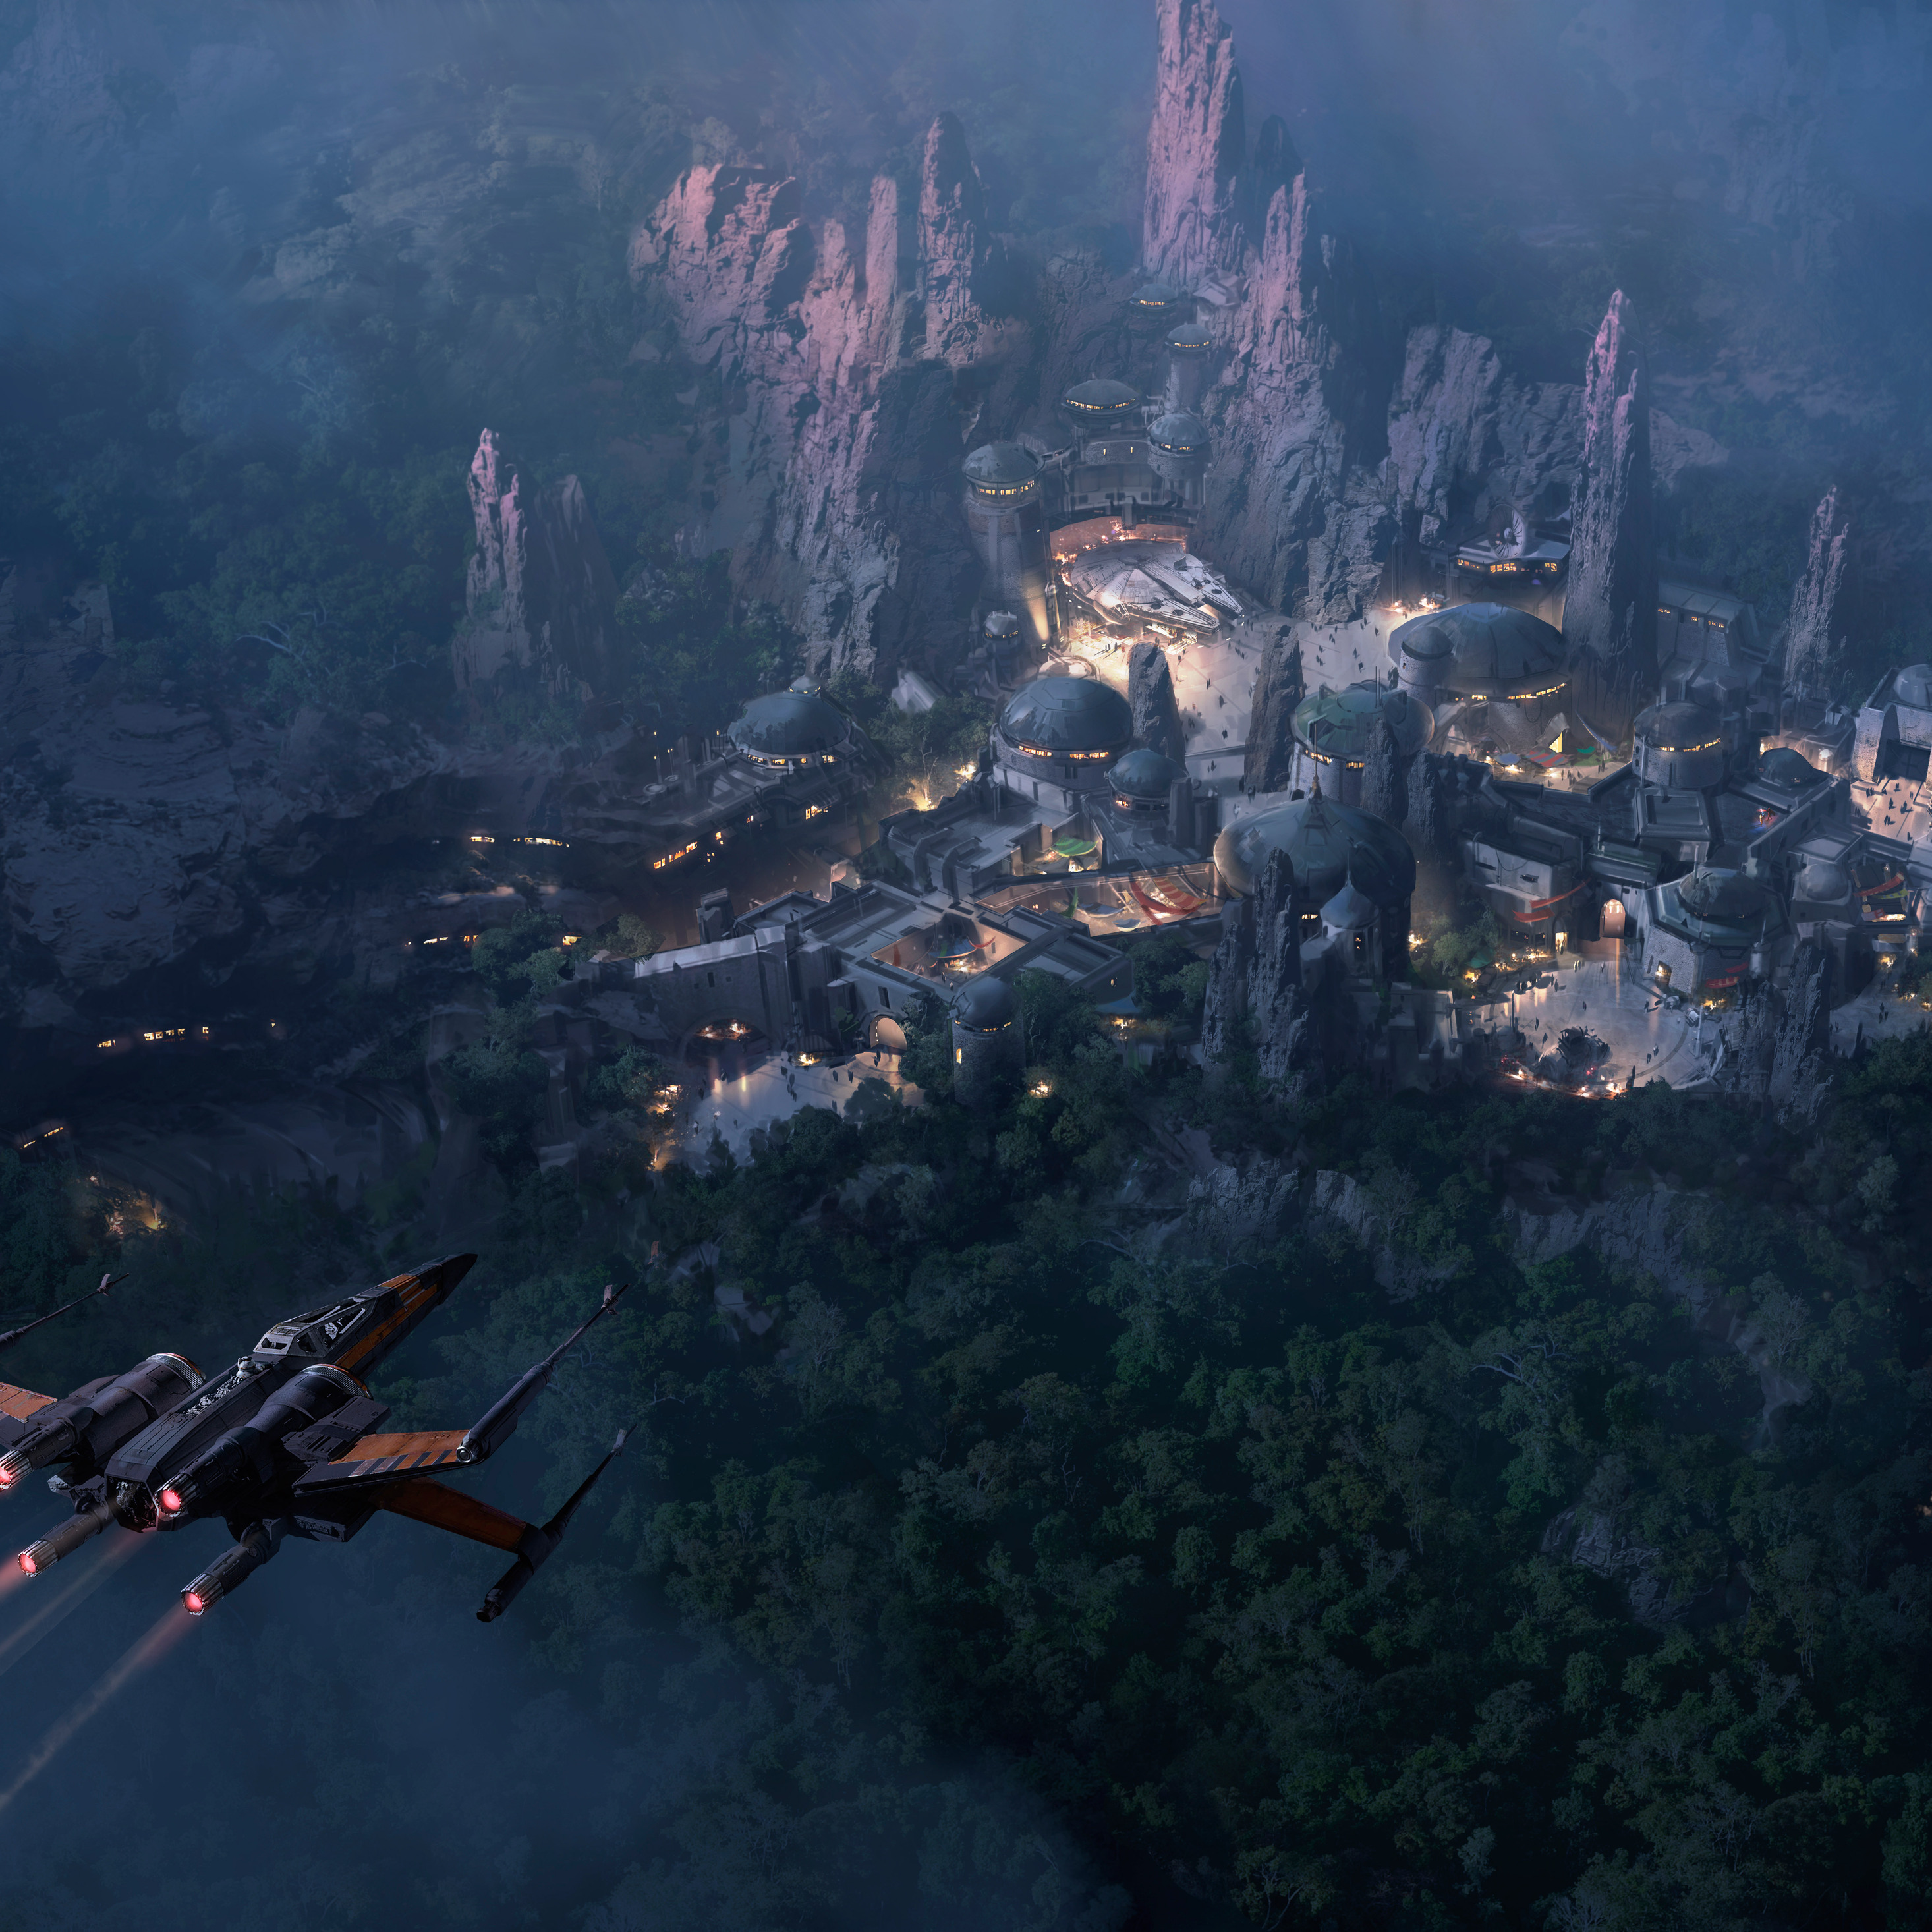 2932x2932 Star Wars Land At Night Concept Art 5k Ipad Pro Retina